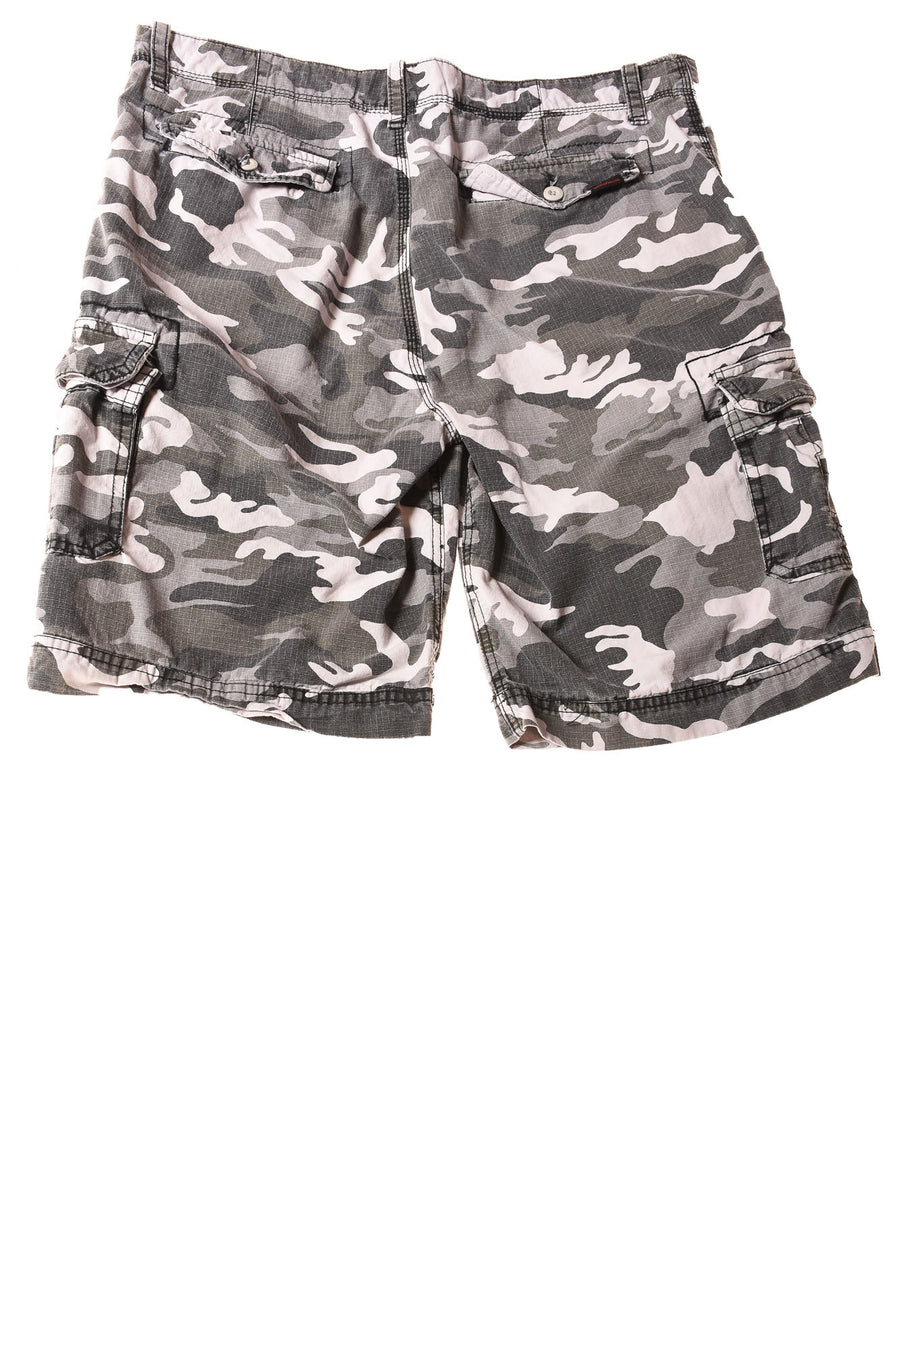 USED Wear First Men's Shorts 36 Gray / Camo Print